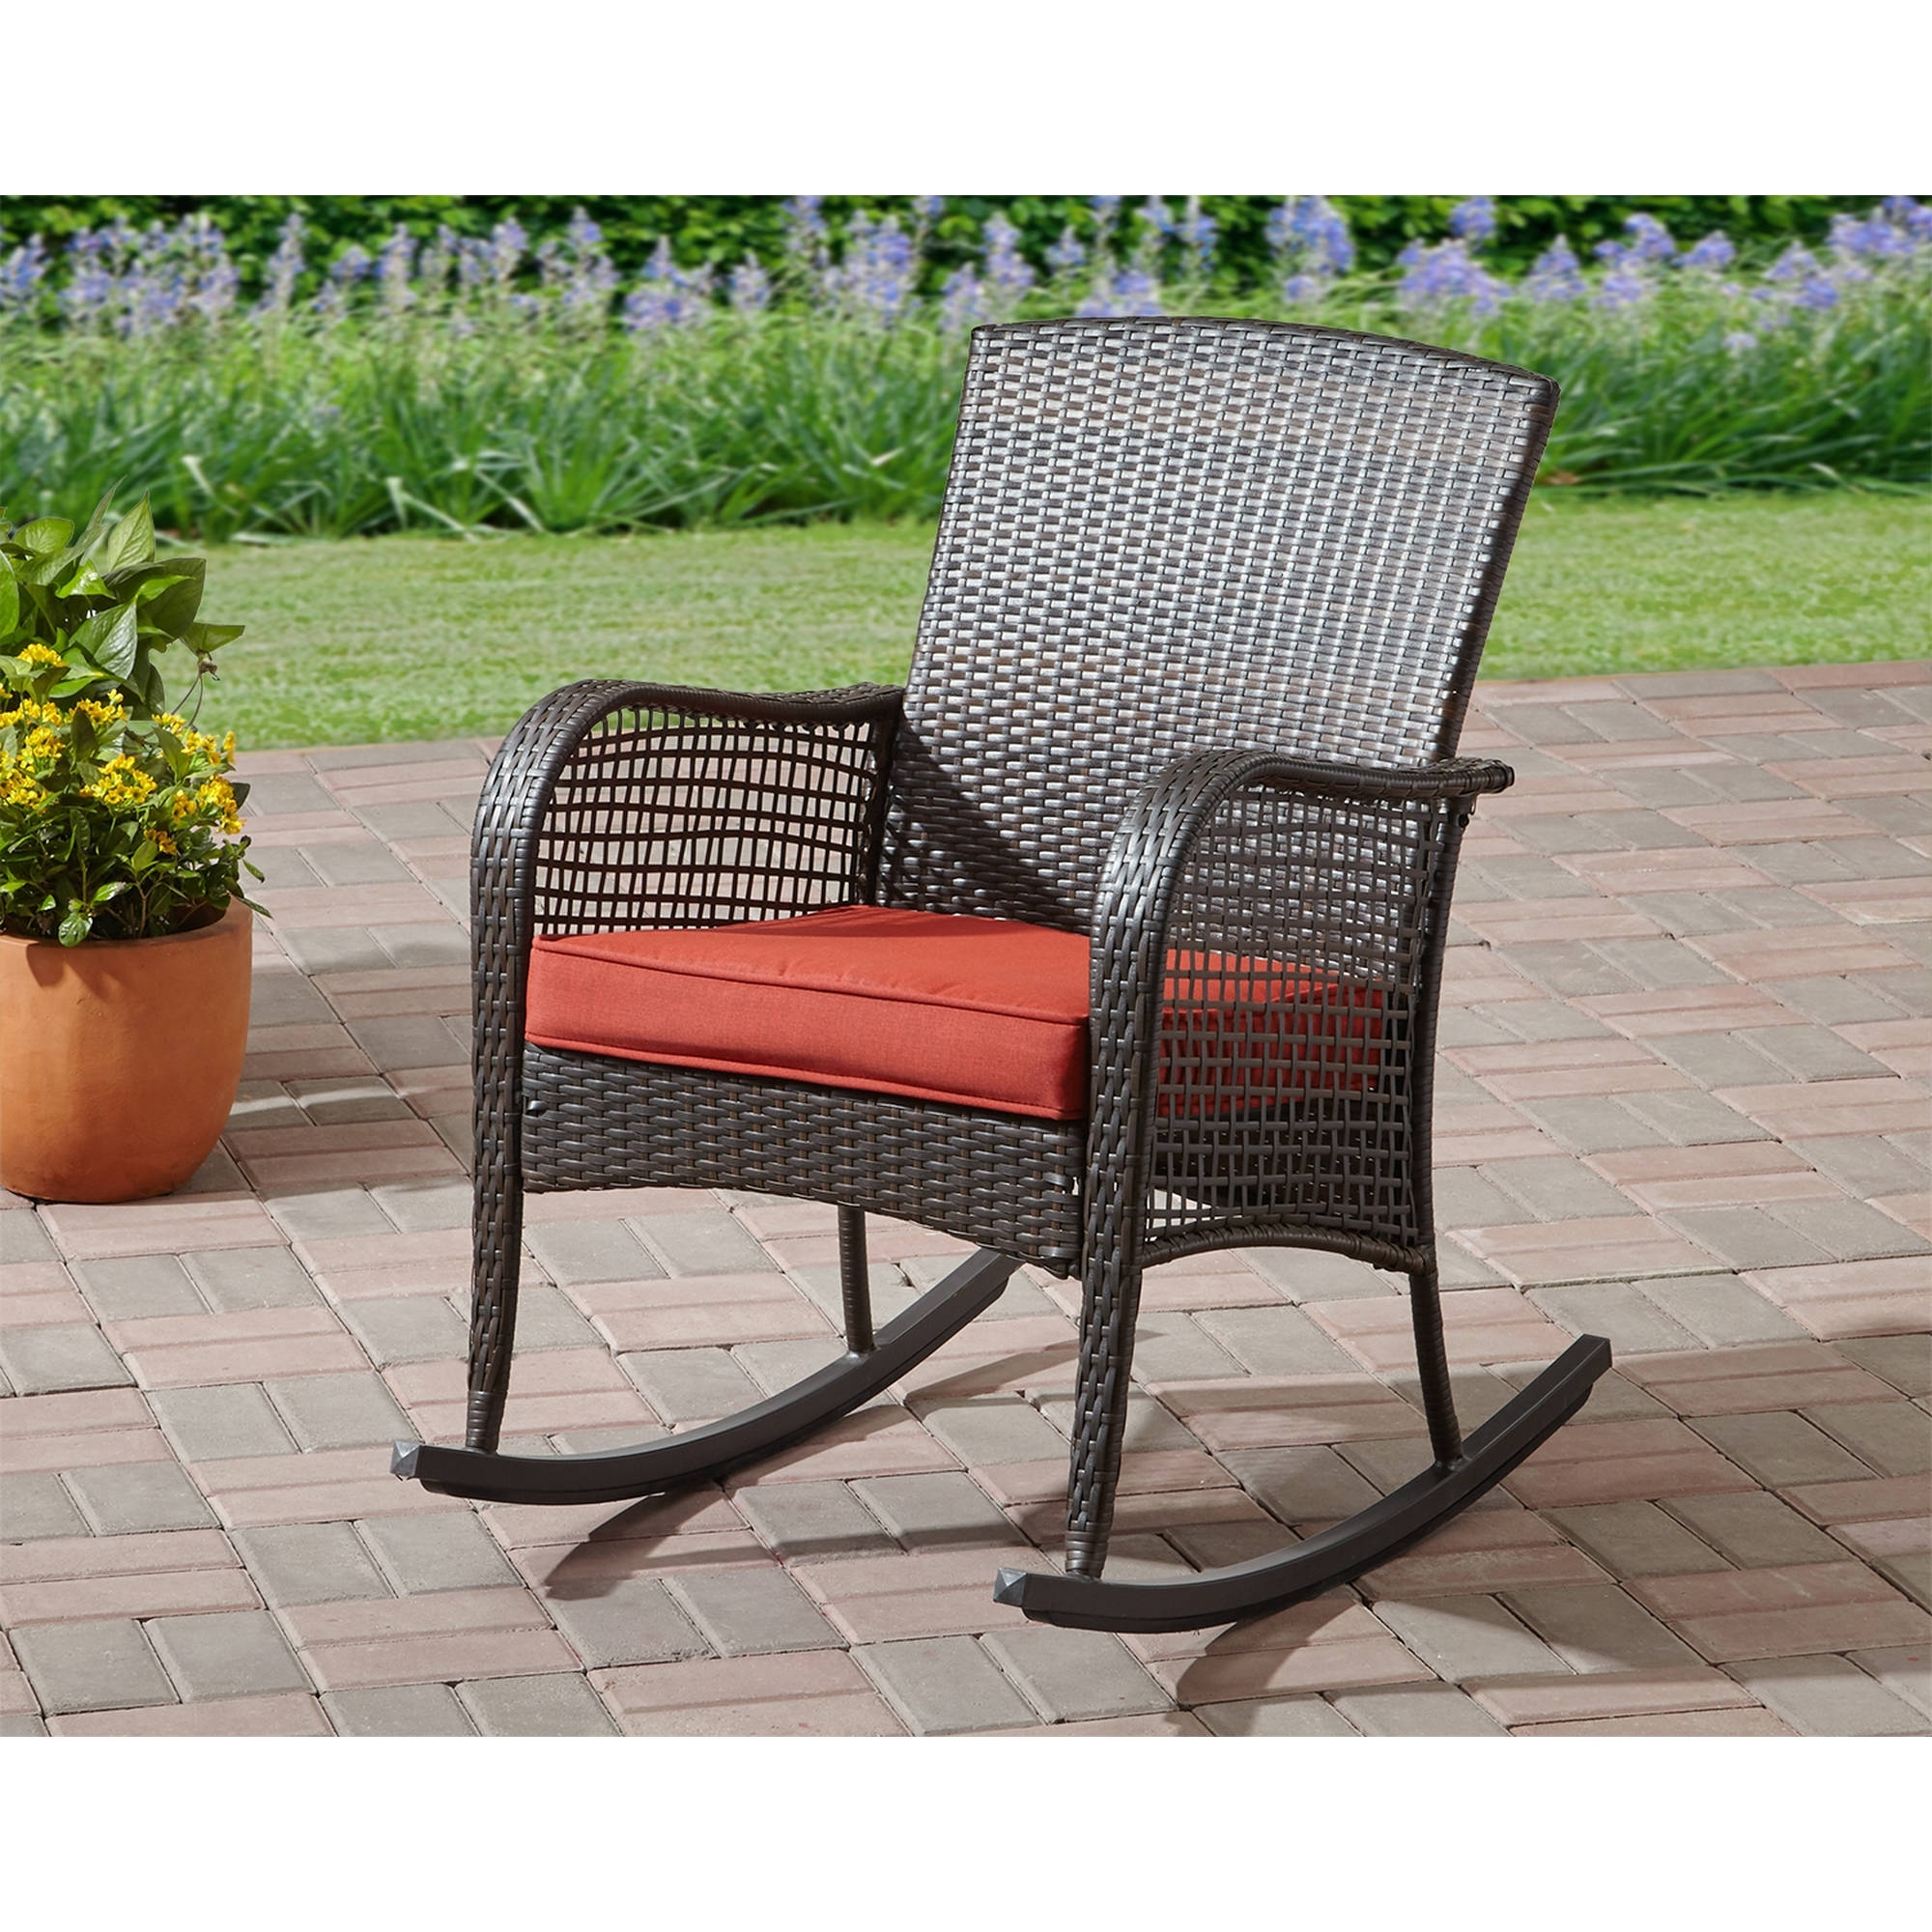 Stunning Outdoor Balcony Chairs 15 Wood Small Patio Furniture Sets Intended For Latest Small Patio Rocking Chairs (View 19 of 20)